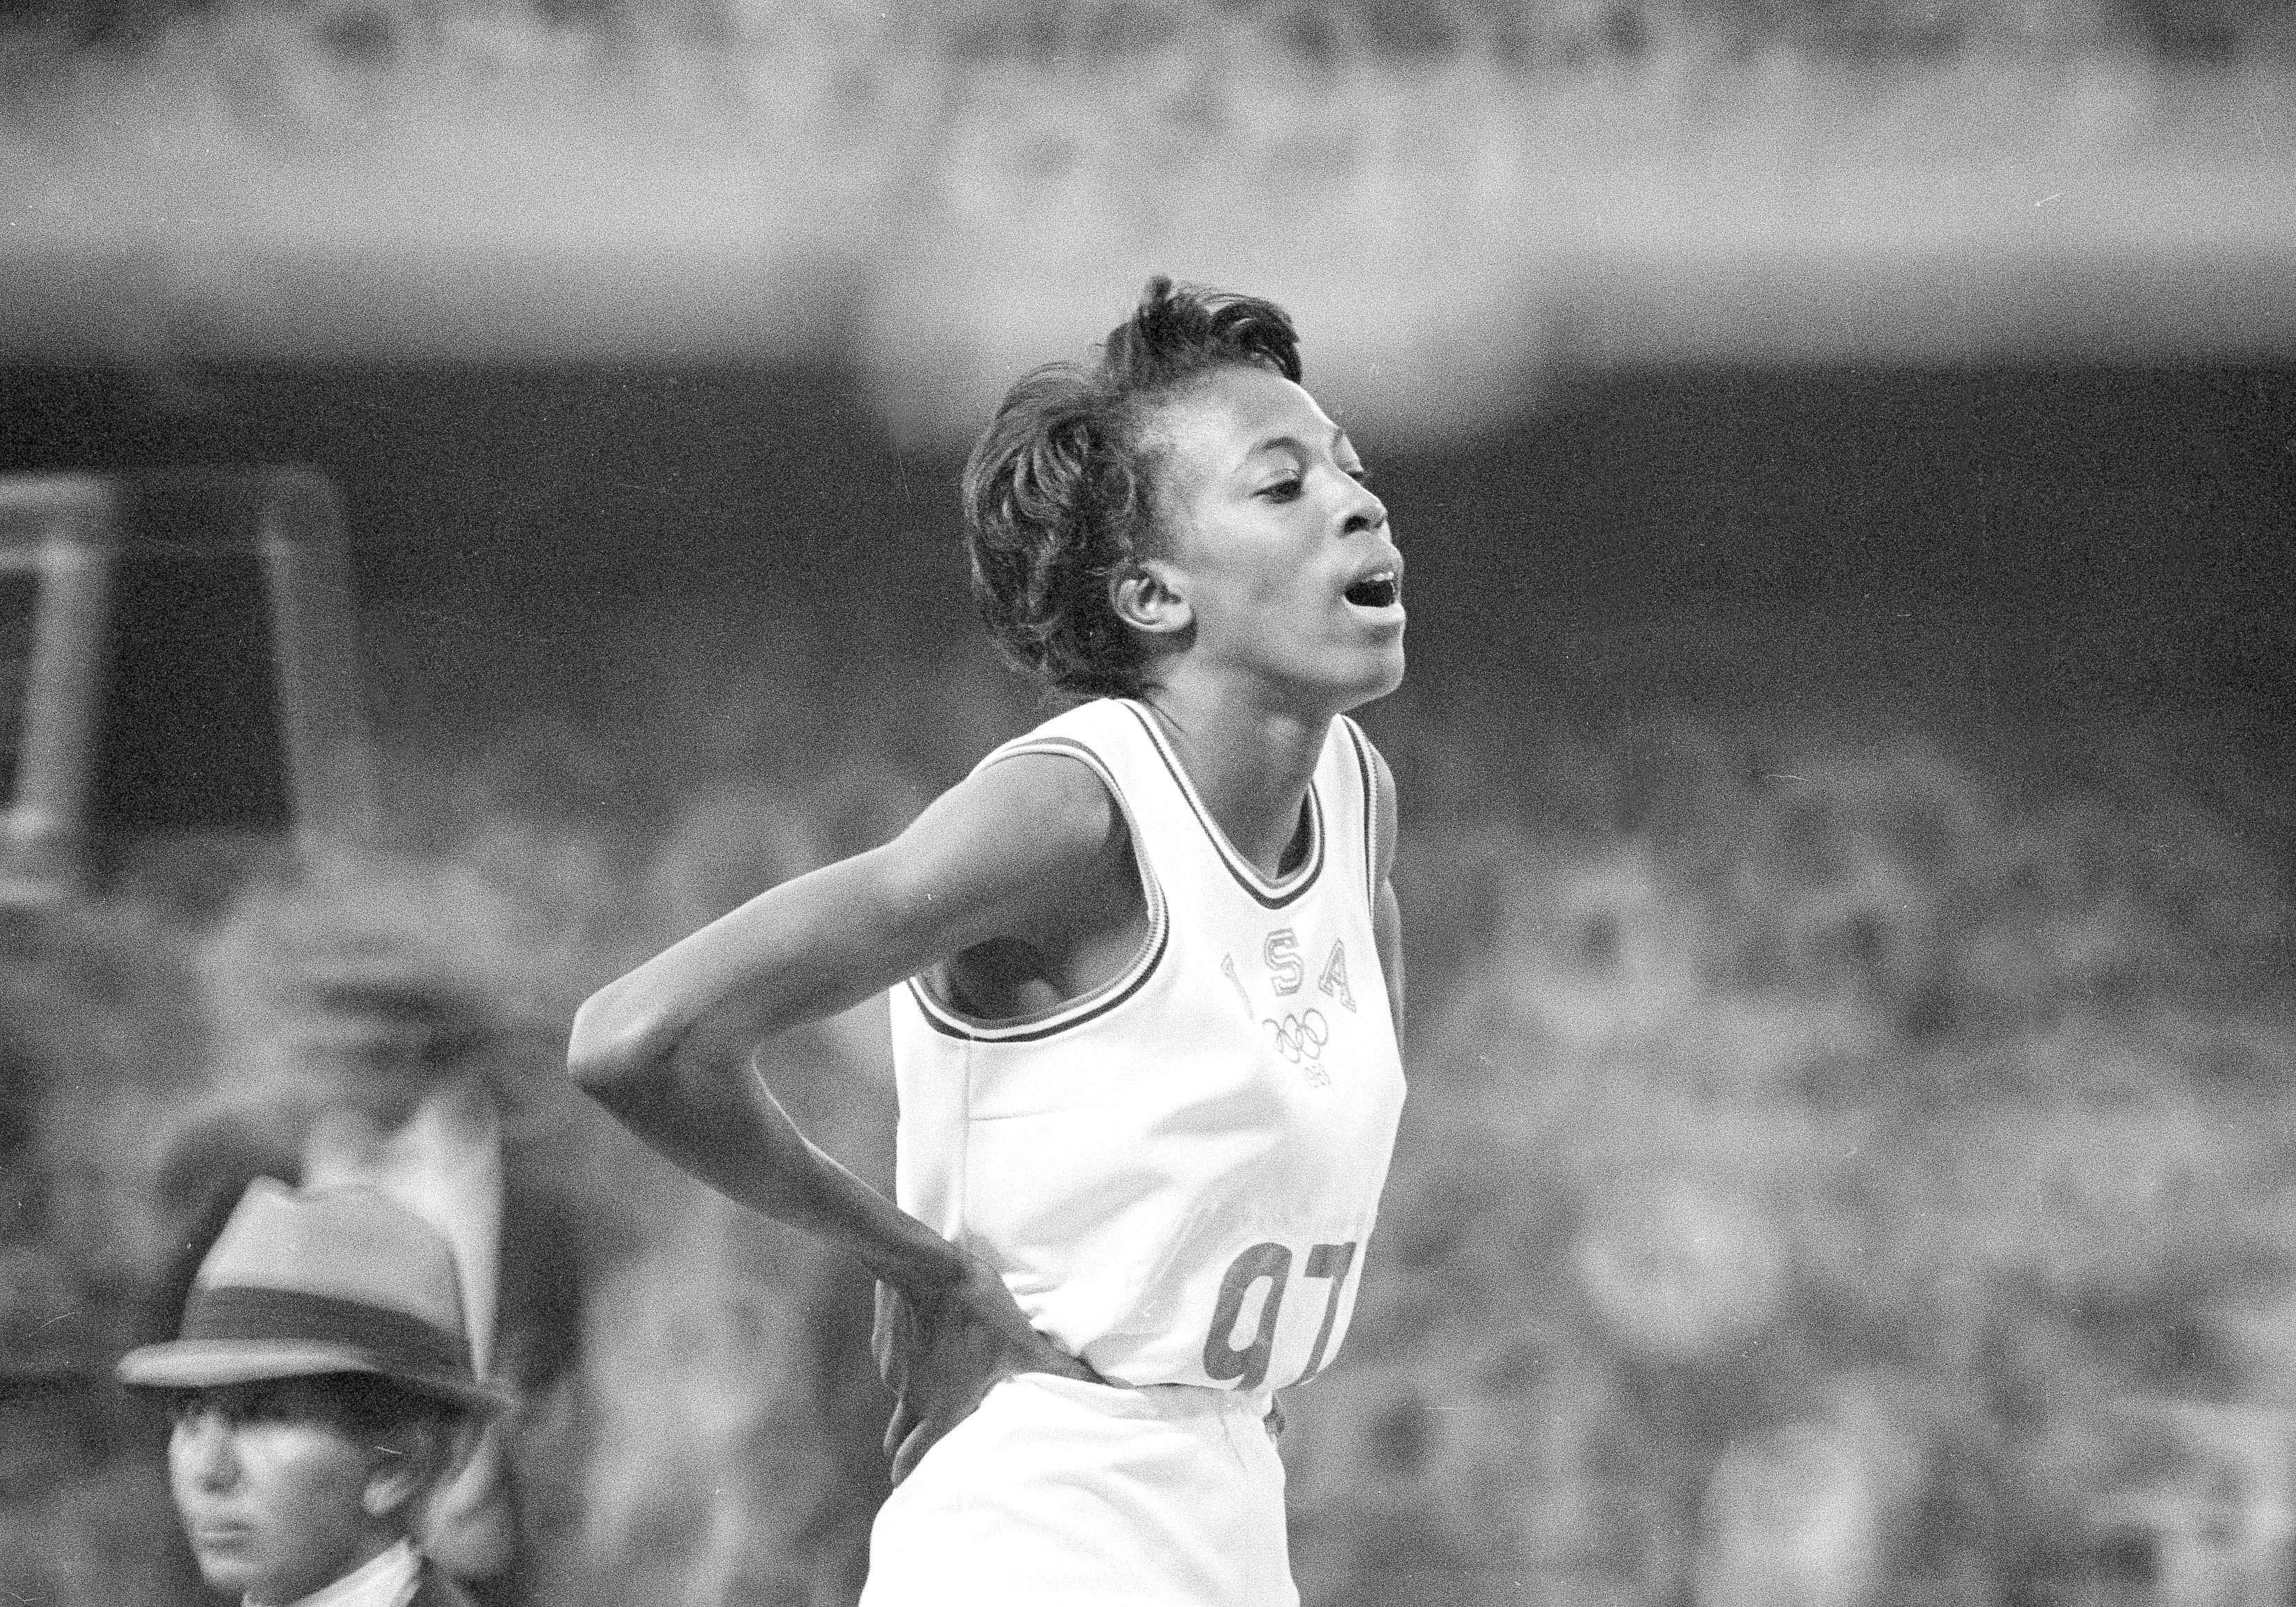 800-meter Olympic champ Mims remains pioneer 50 years later